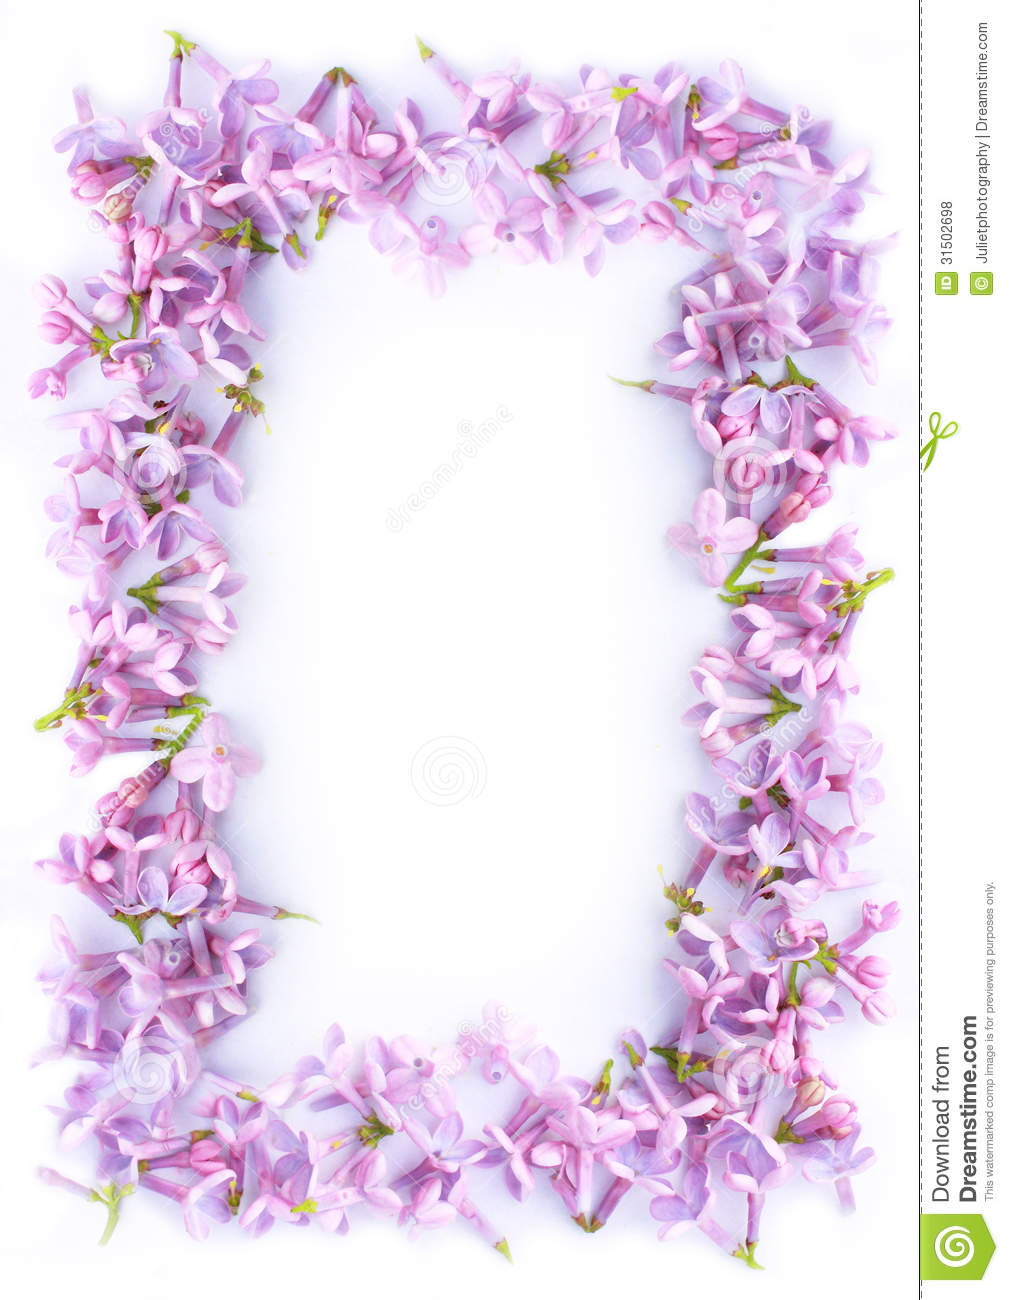 ... Romantic Lilac Frame Royalty Free Stock Photos - Image: 31502698